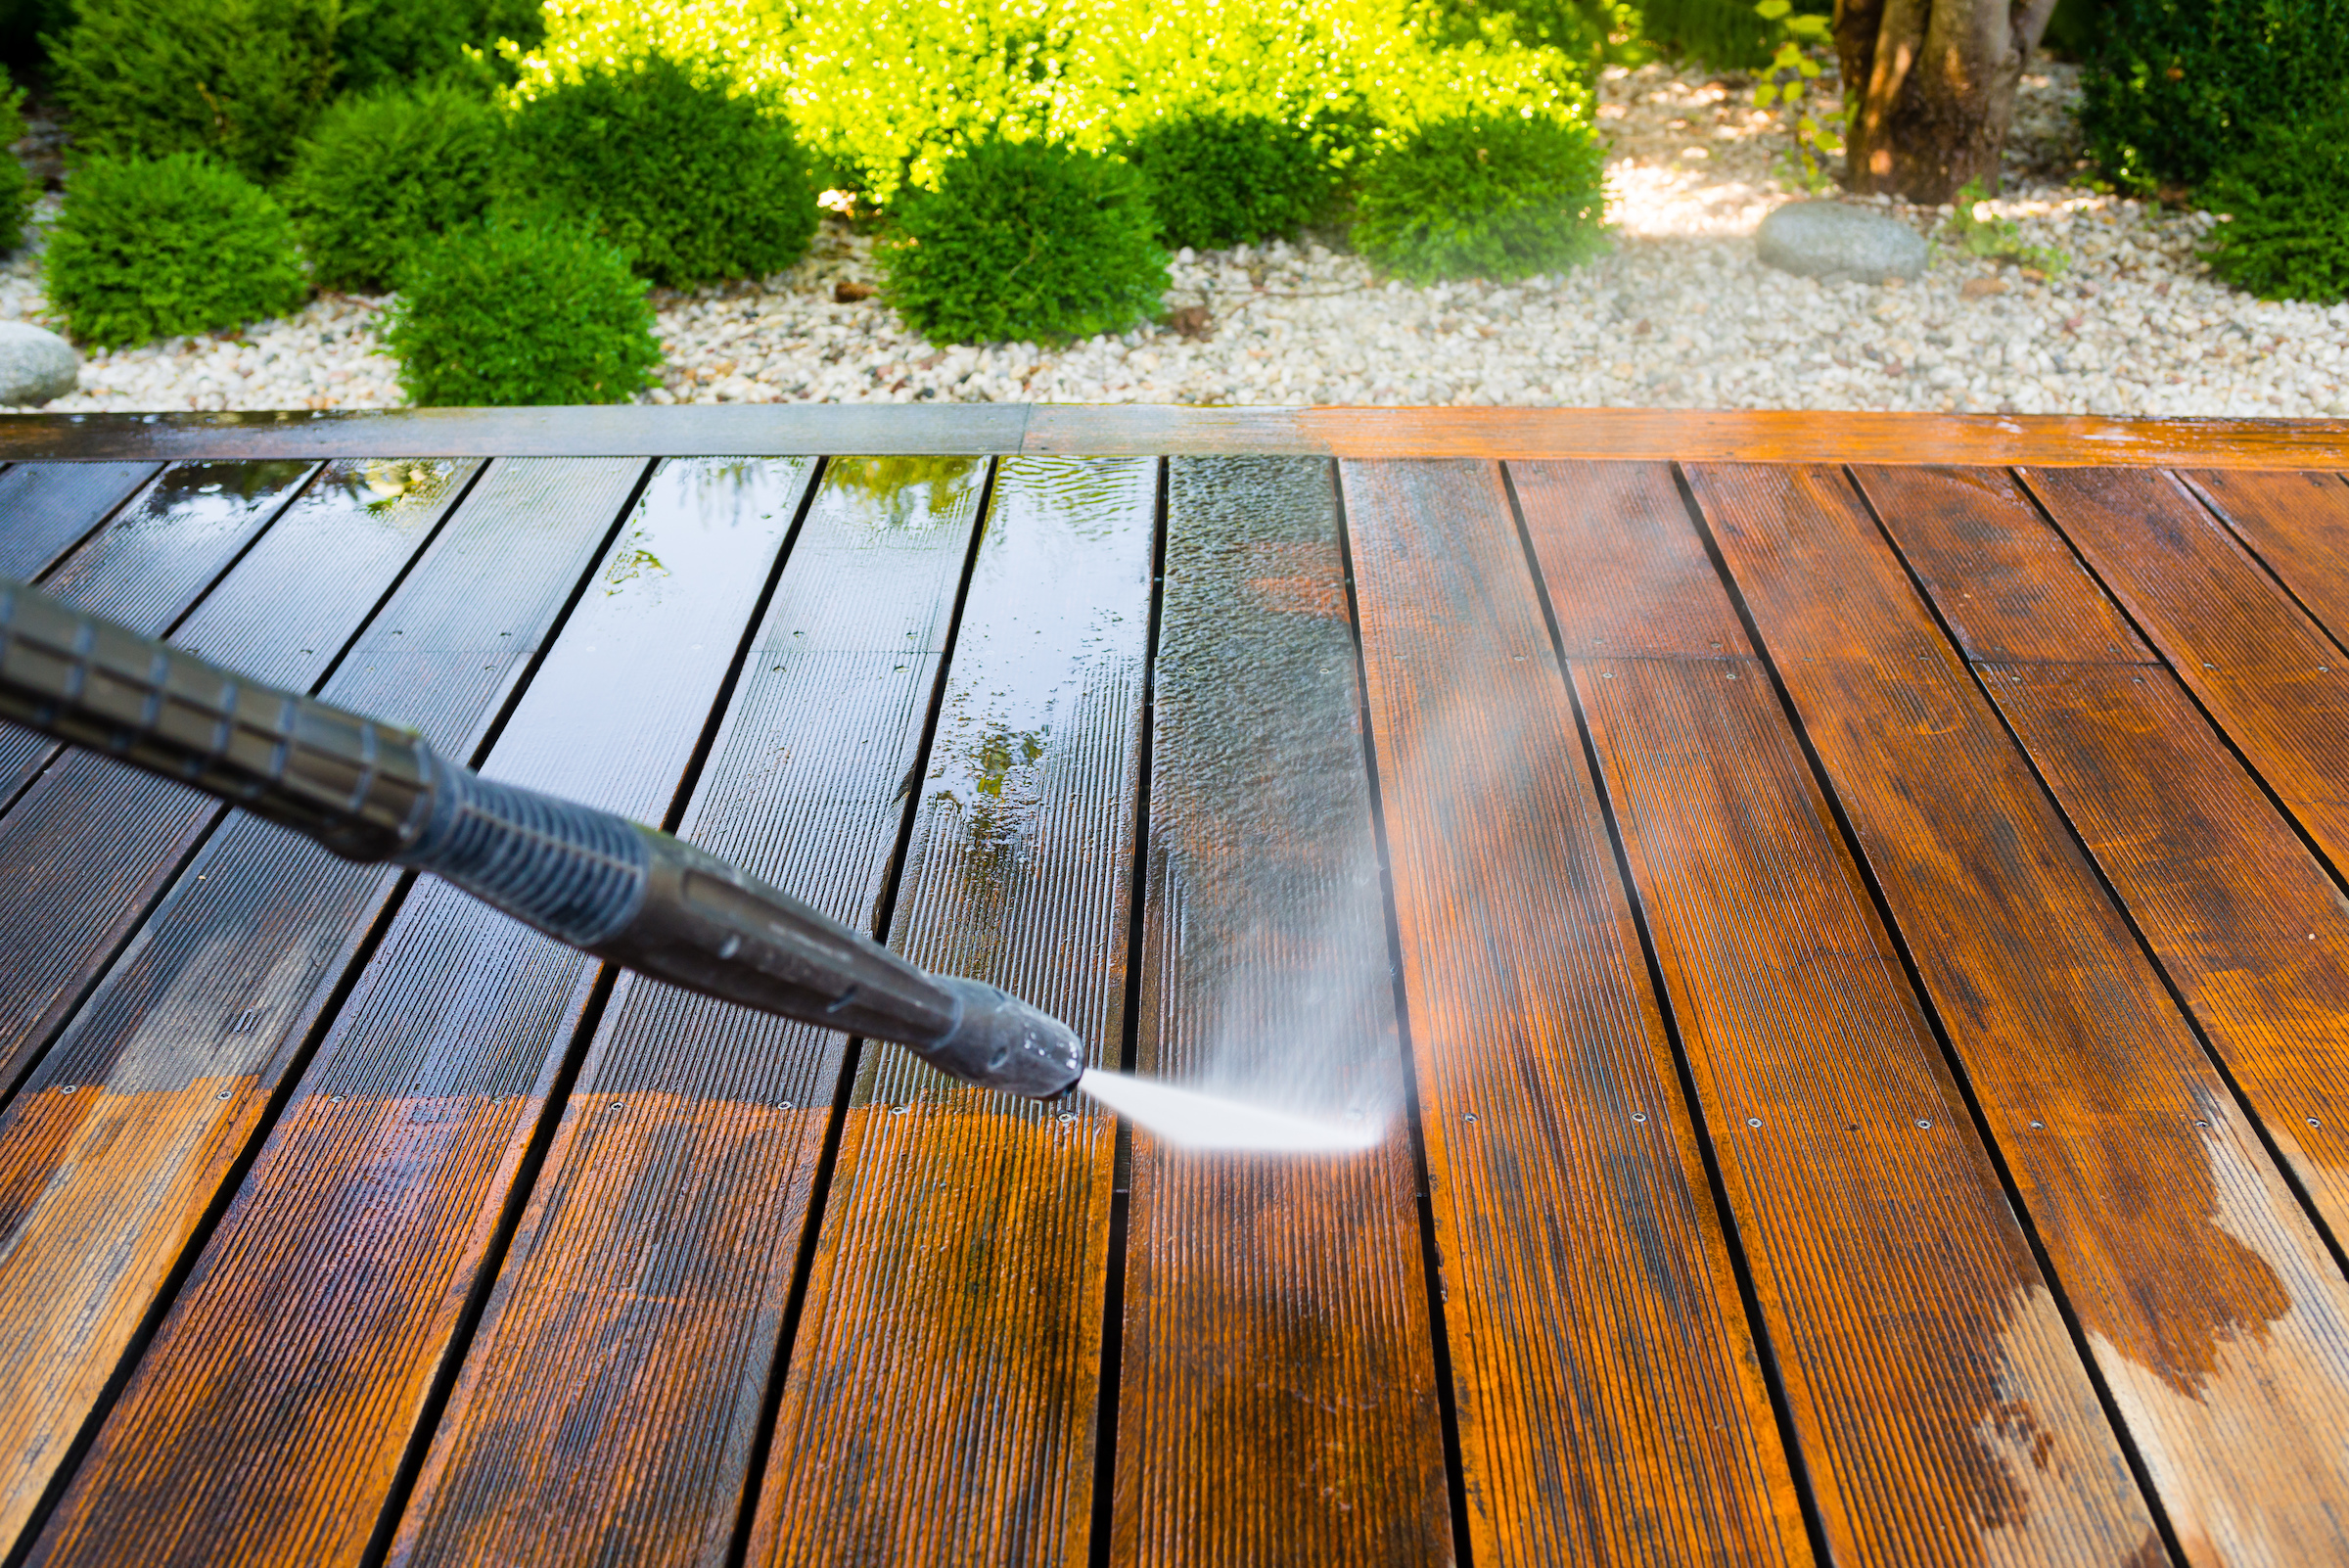 Buy or rent pressure washer: how much do you want to spend?